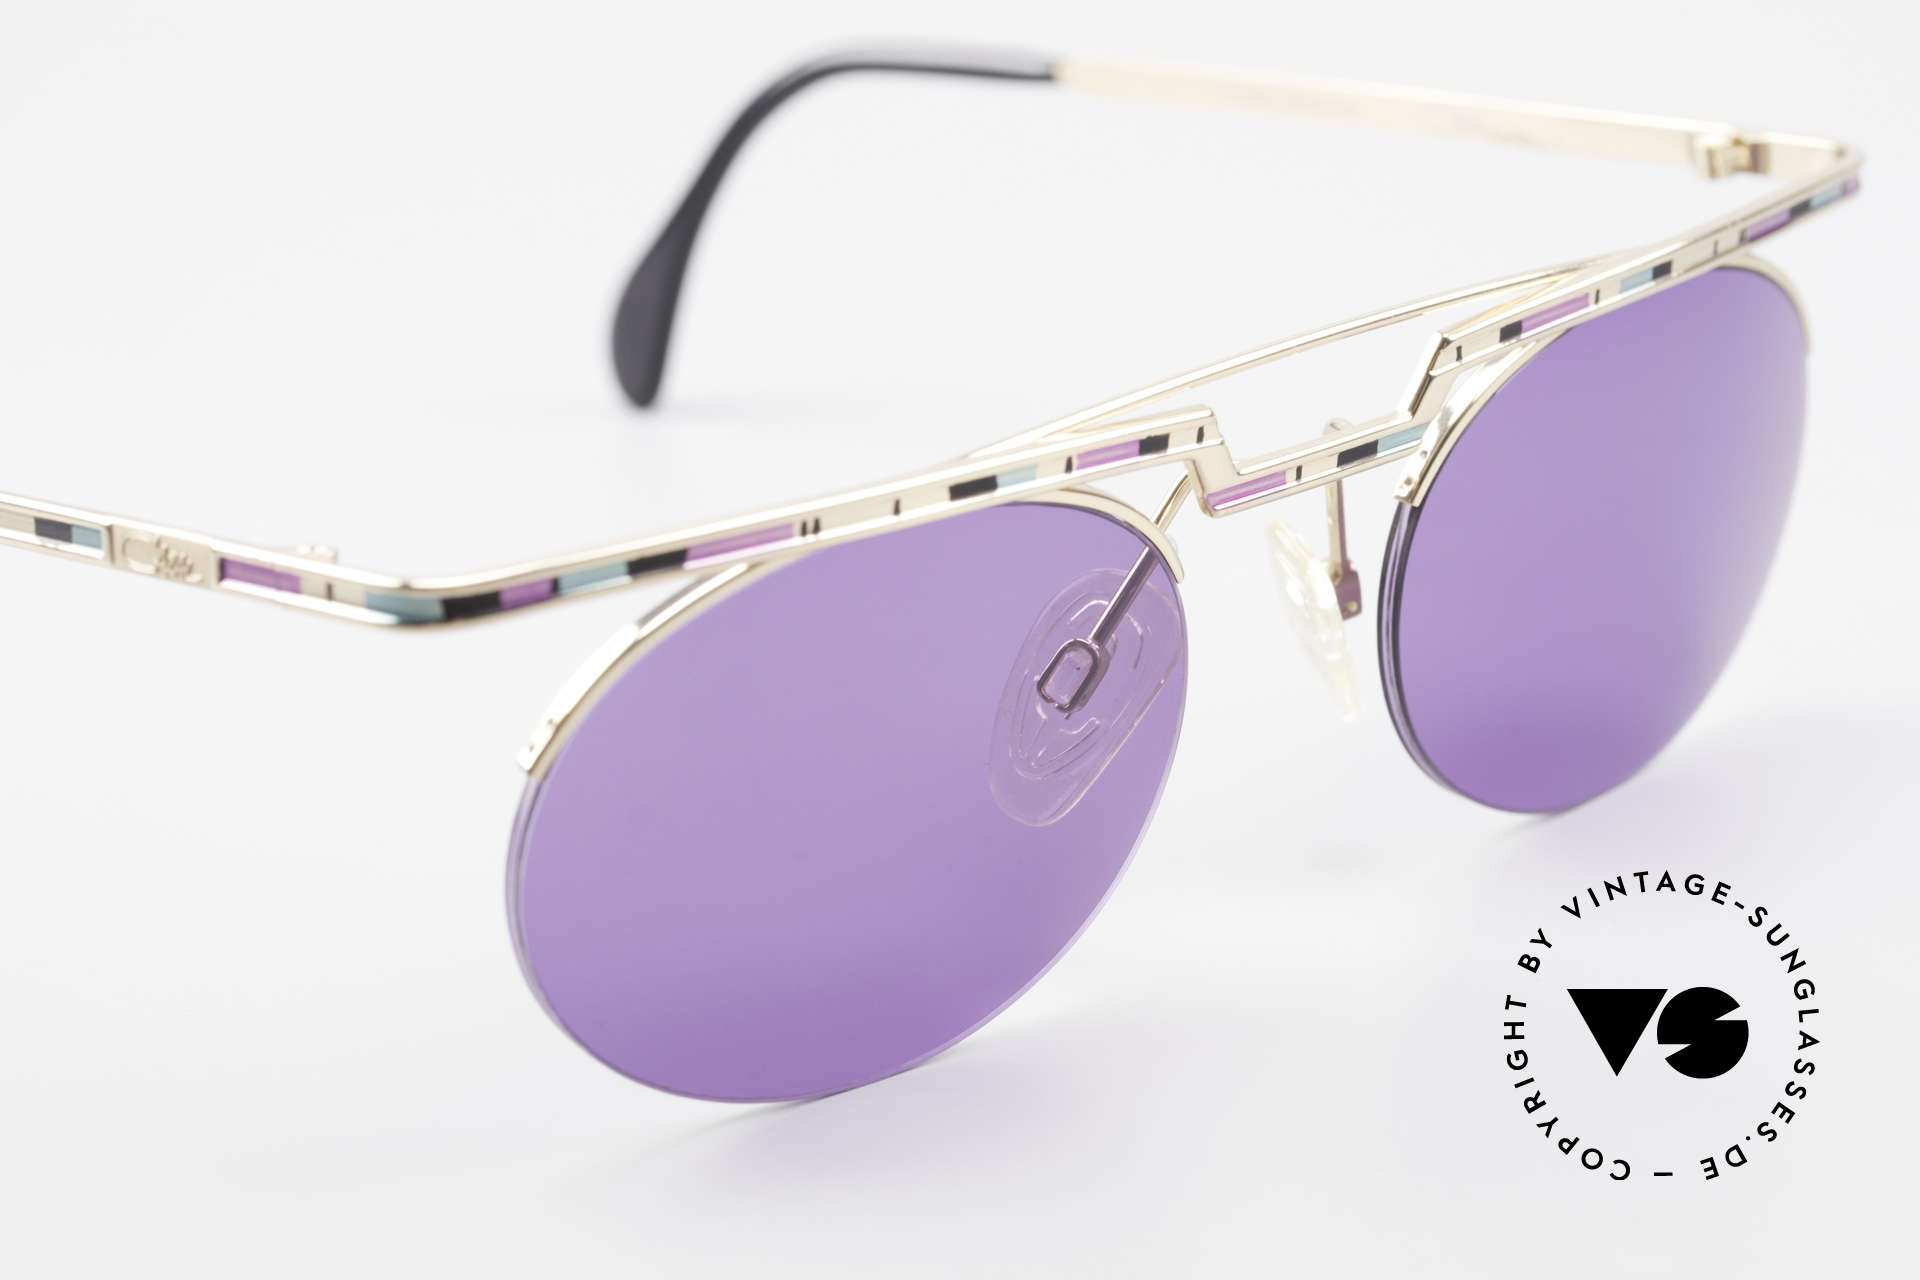 Cazal 758 No Retro Cazal Sunglasses 90s, tangible high-end craftsmanship (frame made in Germany), Made for Men and Women